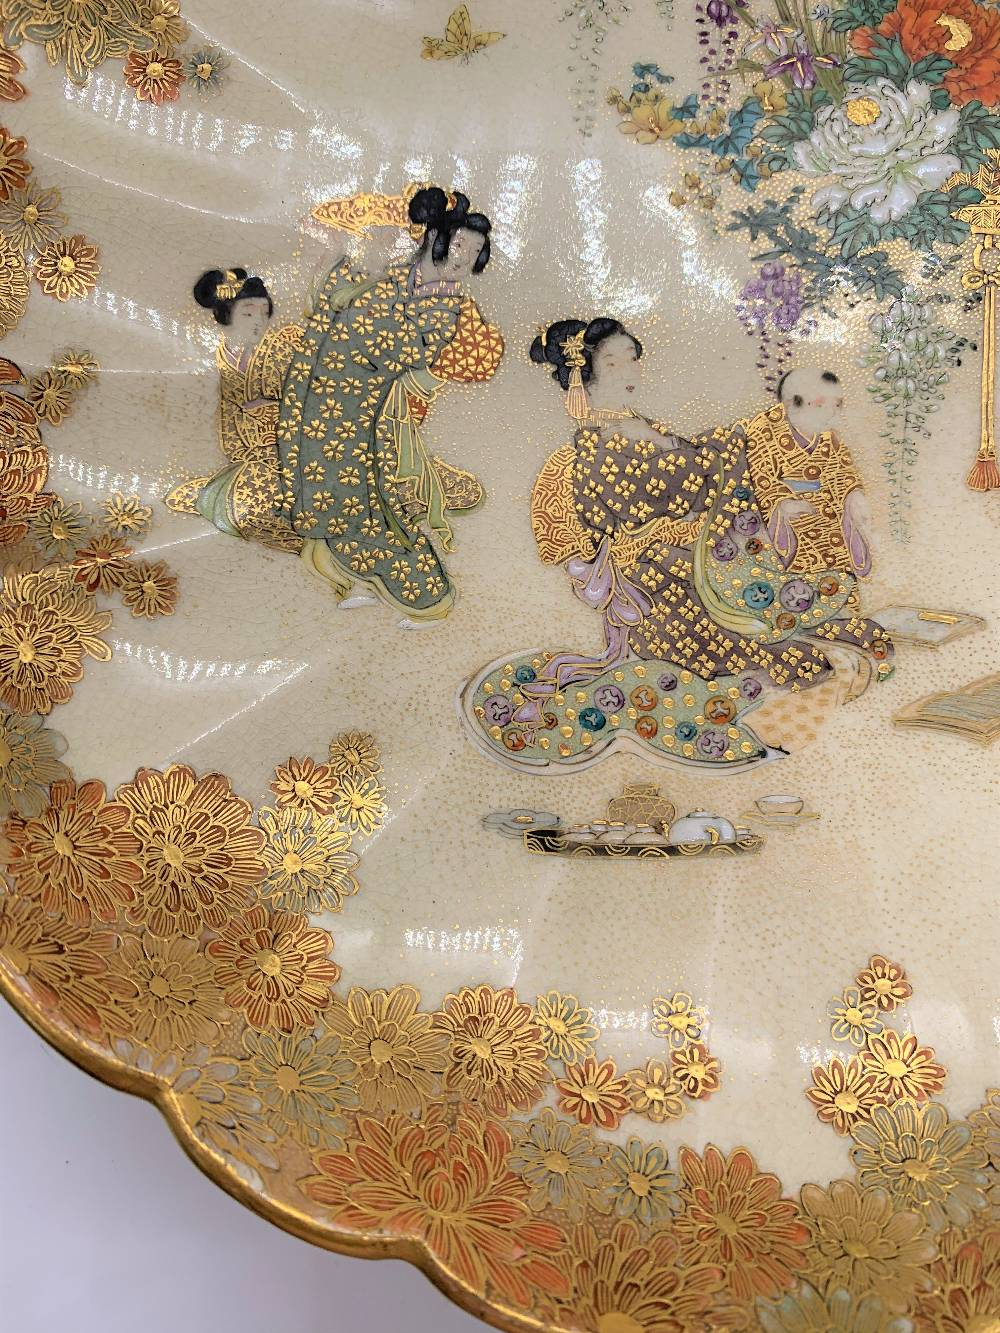 RYUN FUZAN; a good Japanese Meiji period Satsuma dish with scallop moulded floral decorated border - Image 3 of 6